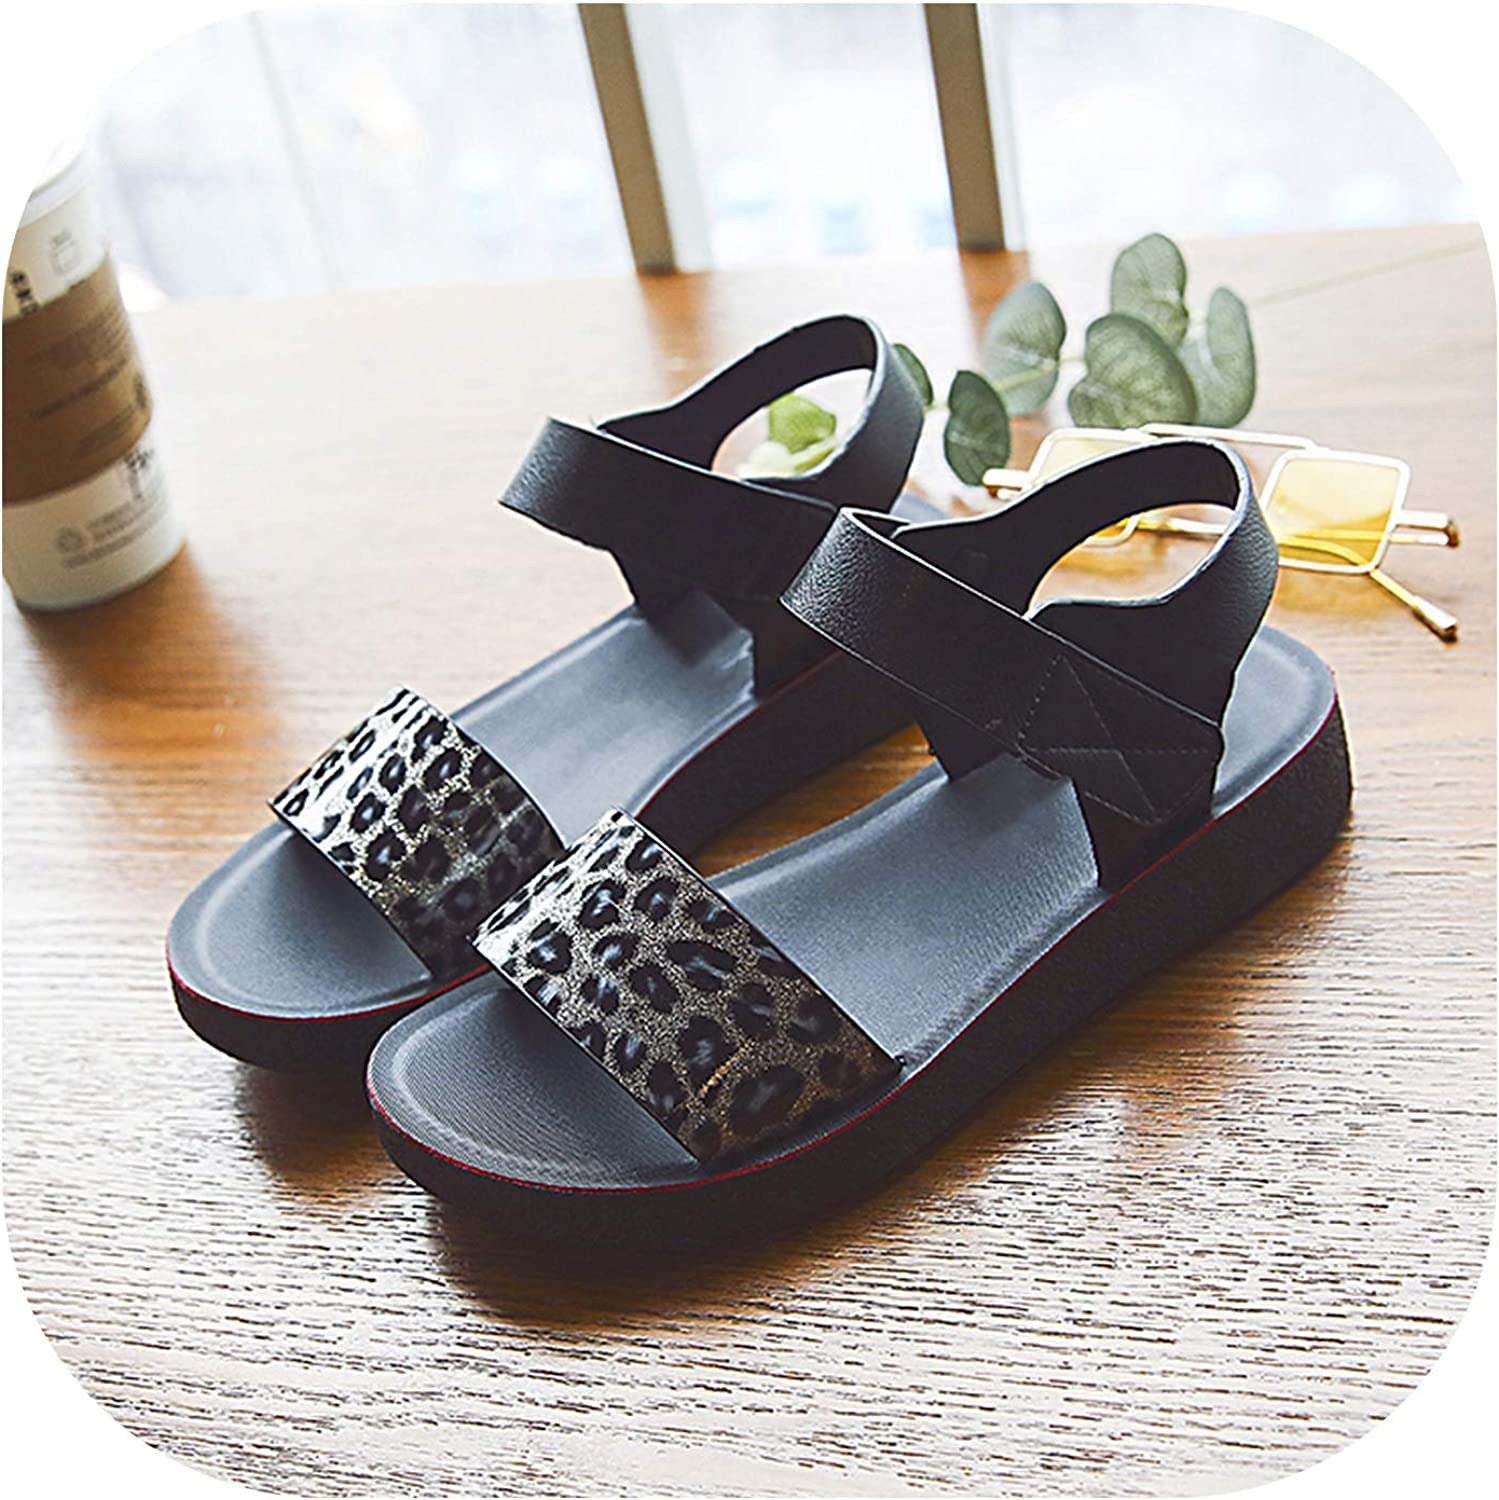 Women Sandals Sequined Cloth High Heels Summer shoes Leopard Slides Platform Sandals